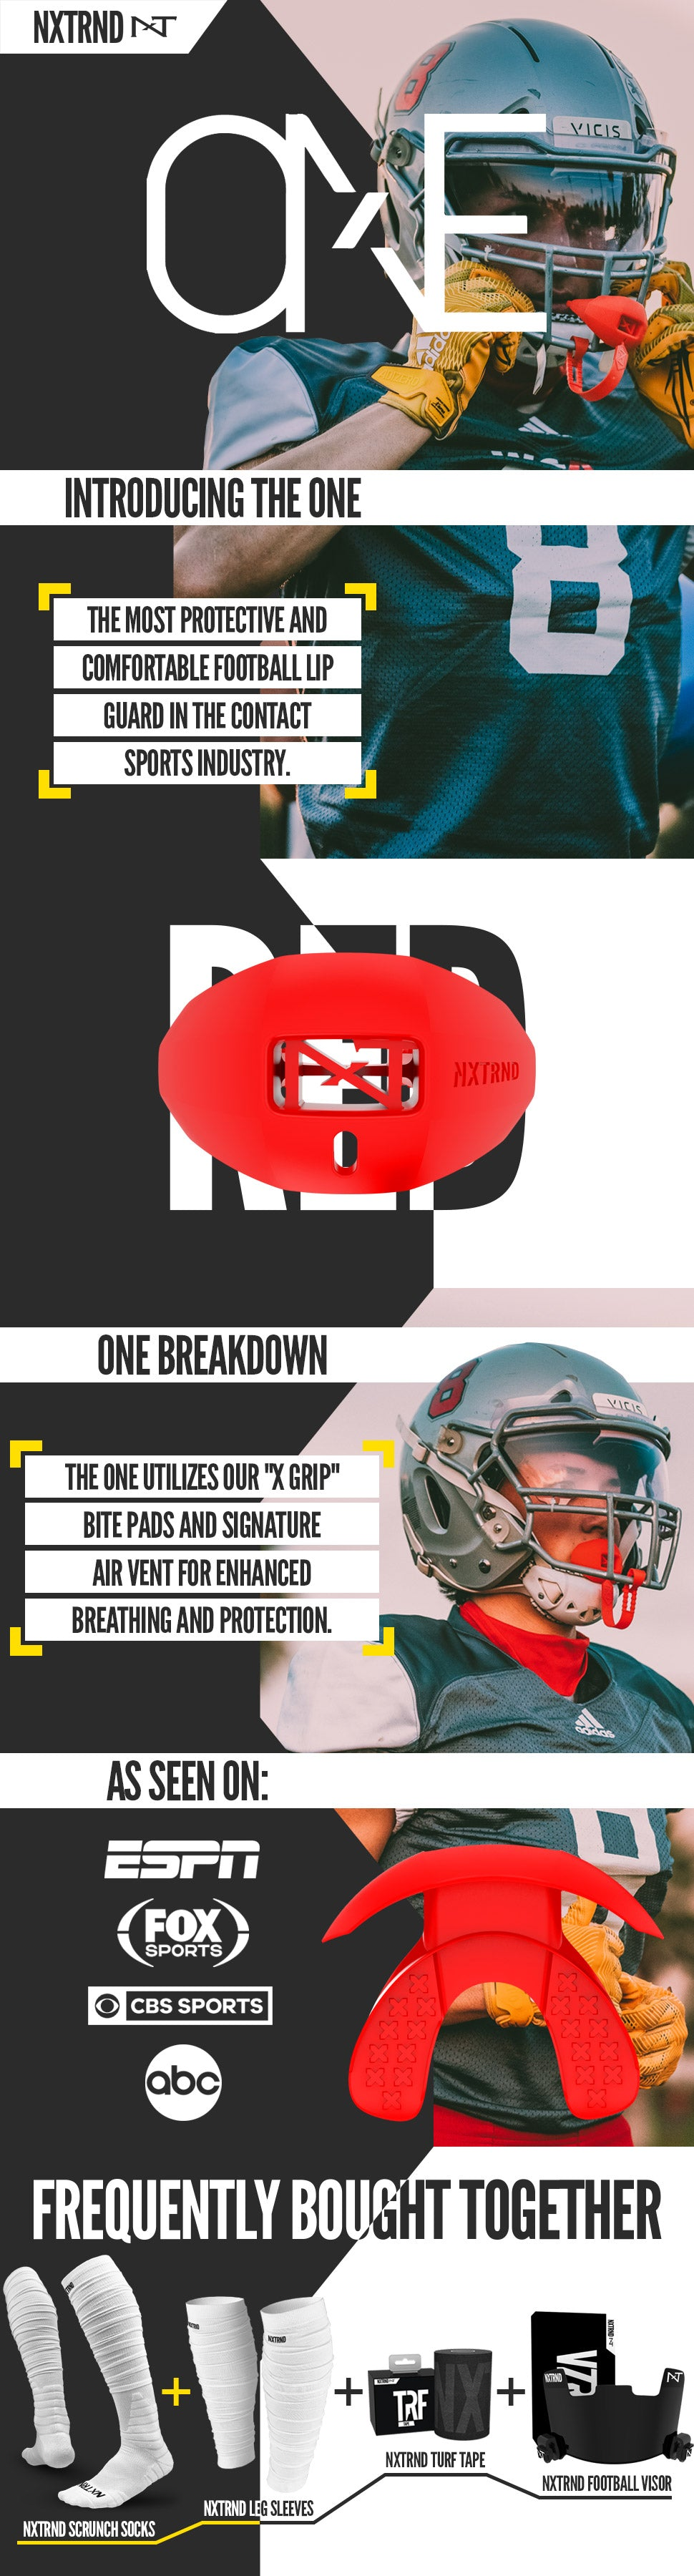 Red Football Mouthguard